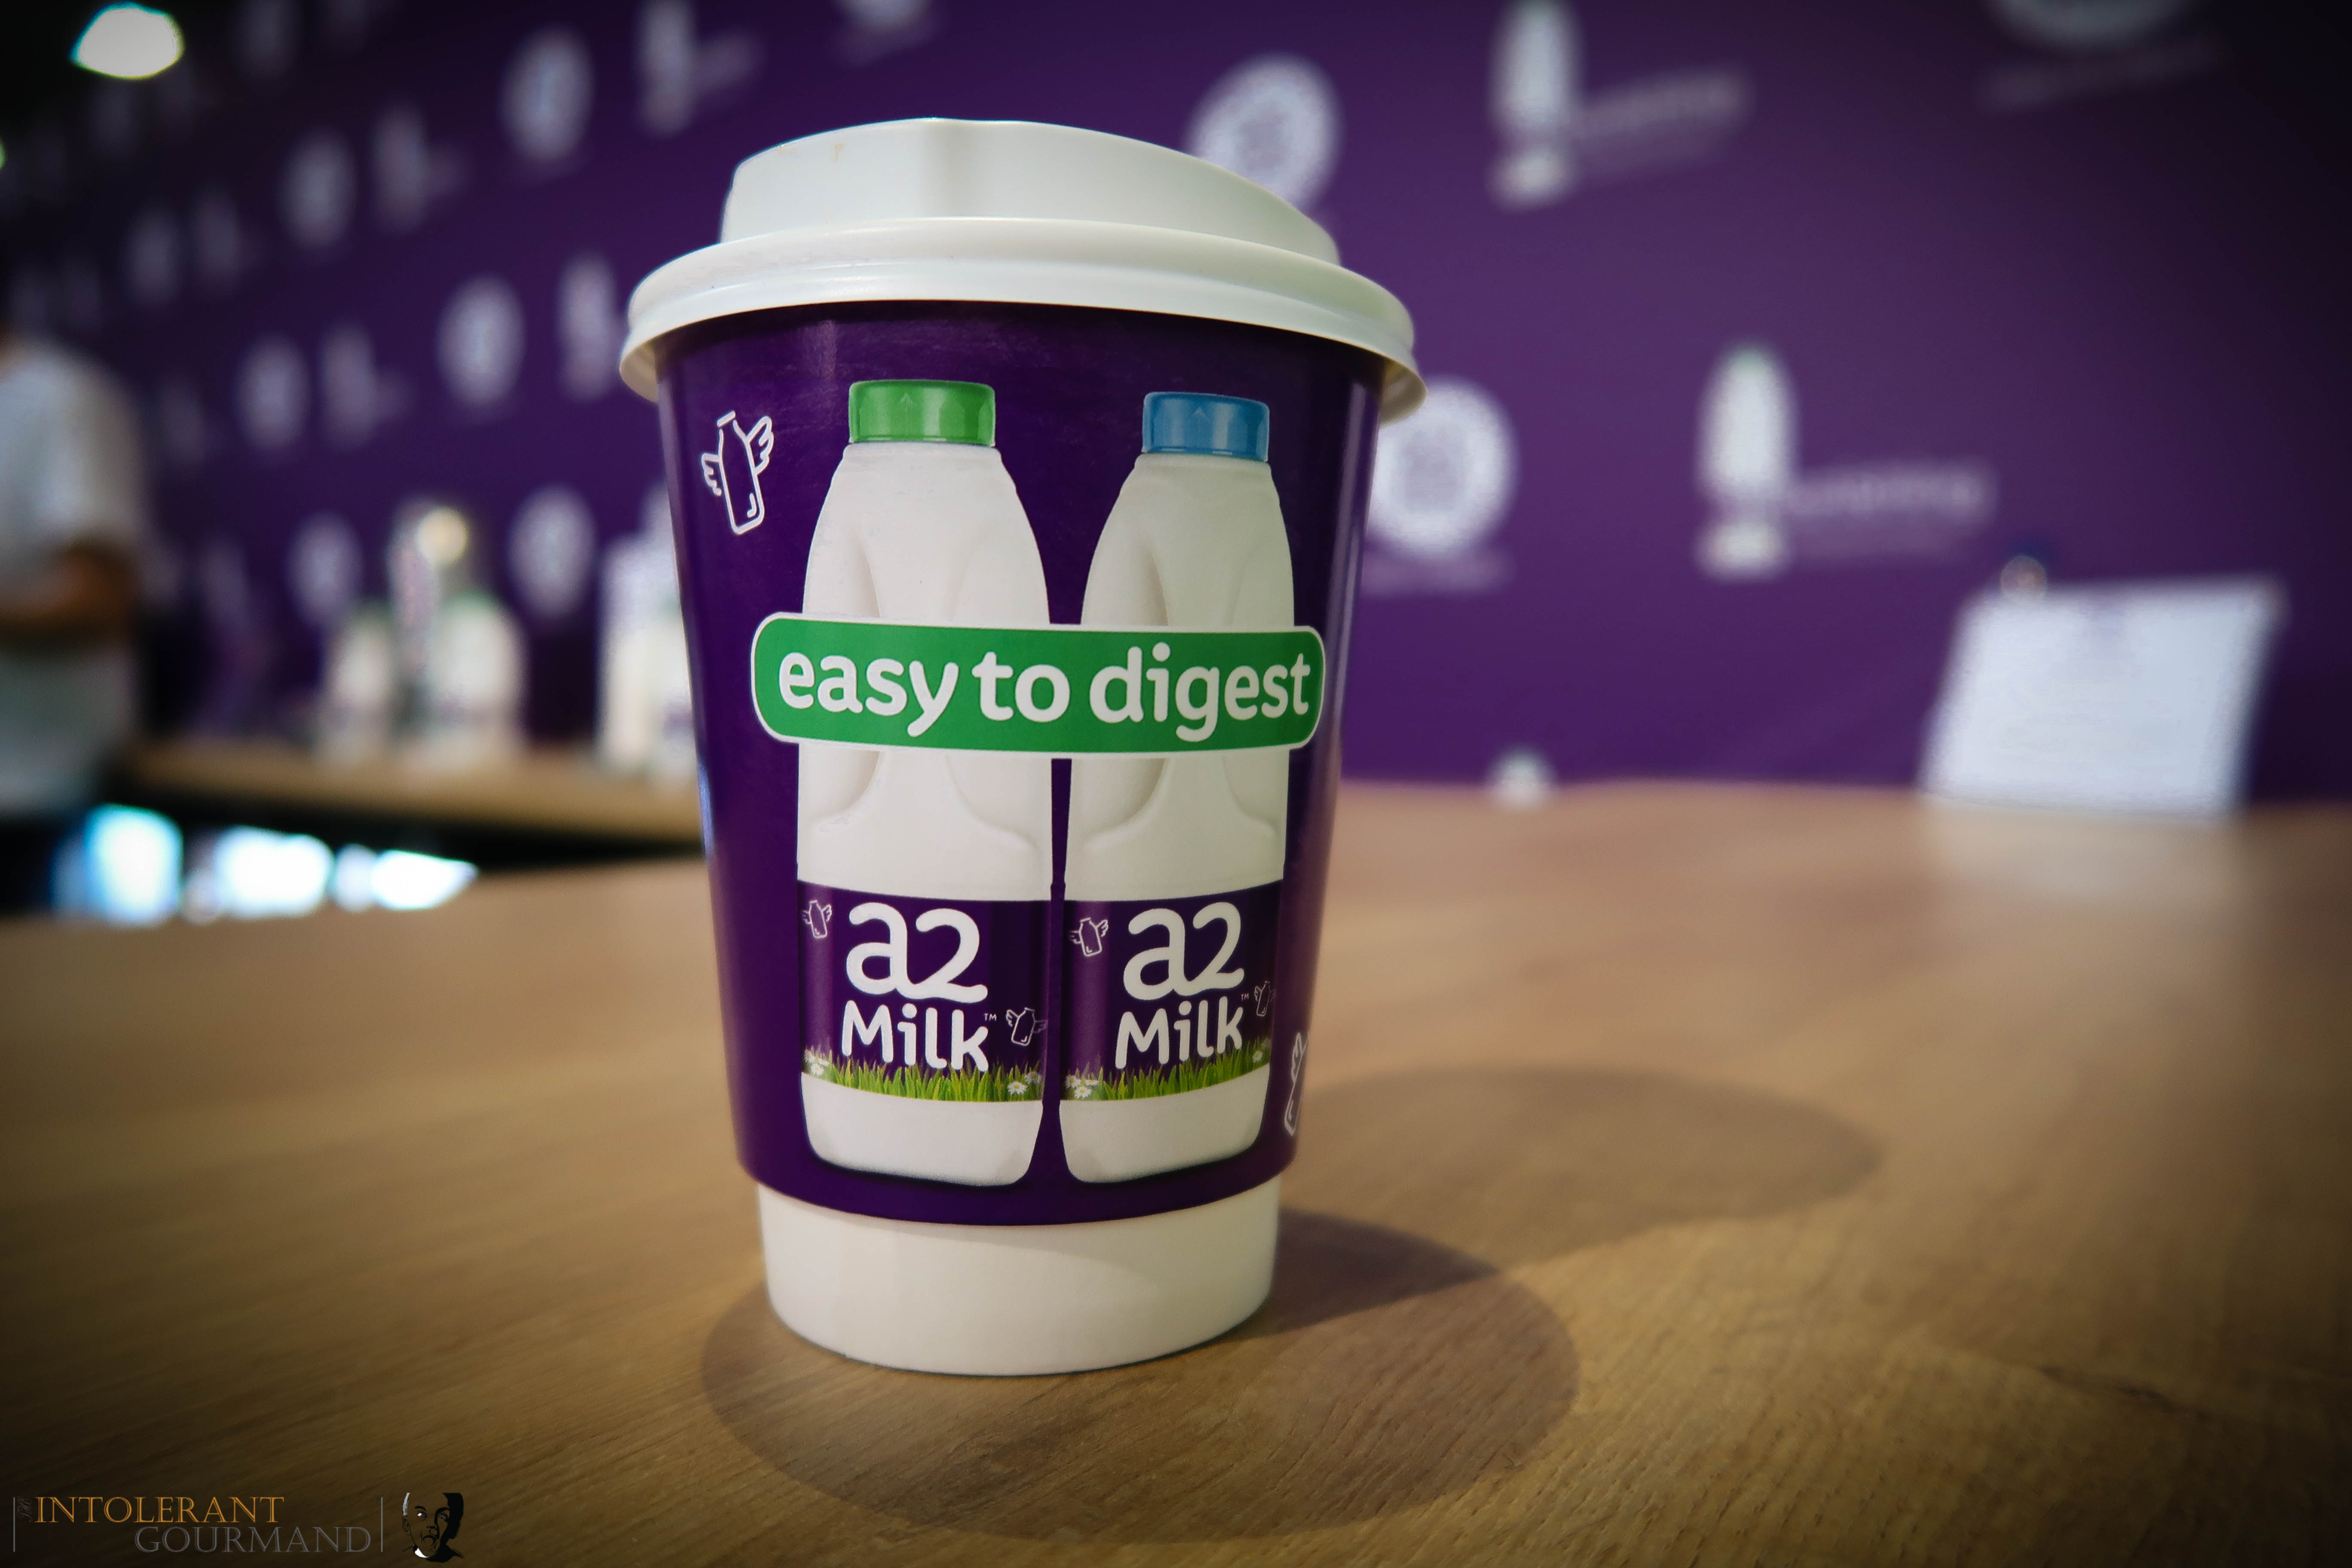 Allergy Show London 2017 - a2 Milk sponsored the Free From Cafe at the Allegry Show. This is a delicious latte made using a2 Milk! www.intolerantgourmand.com